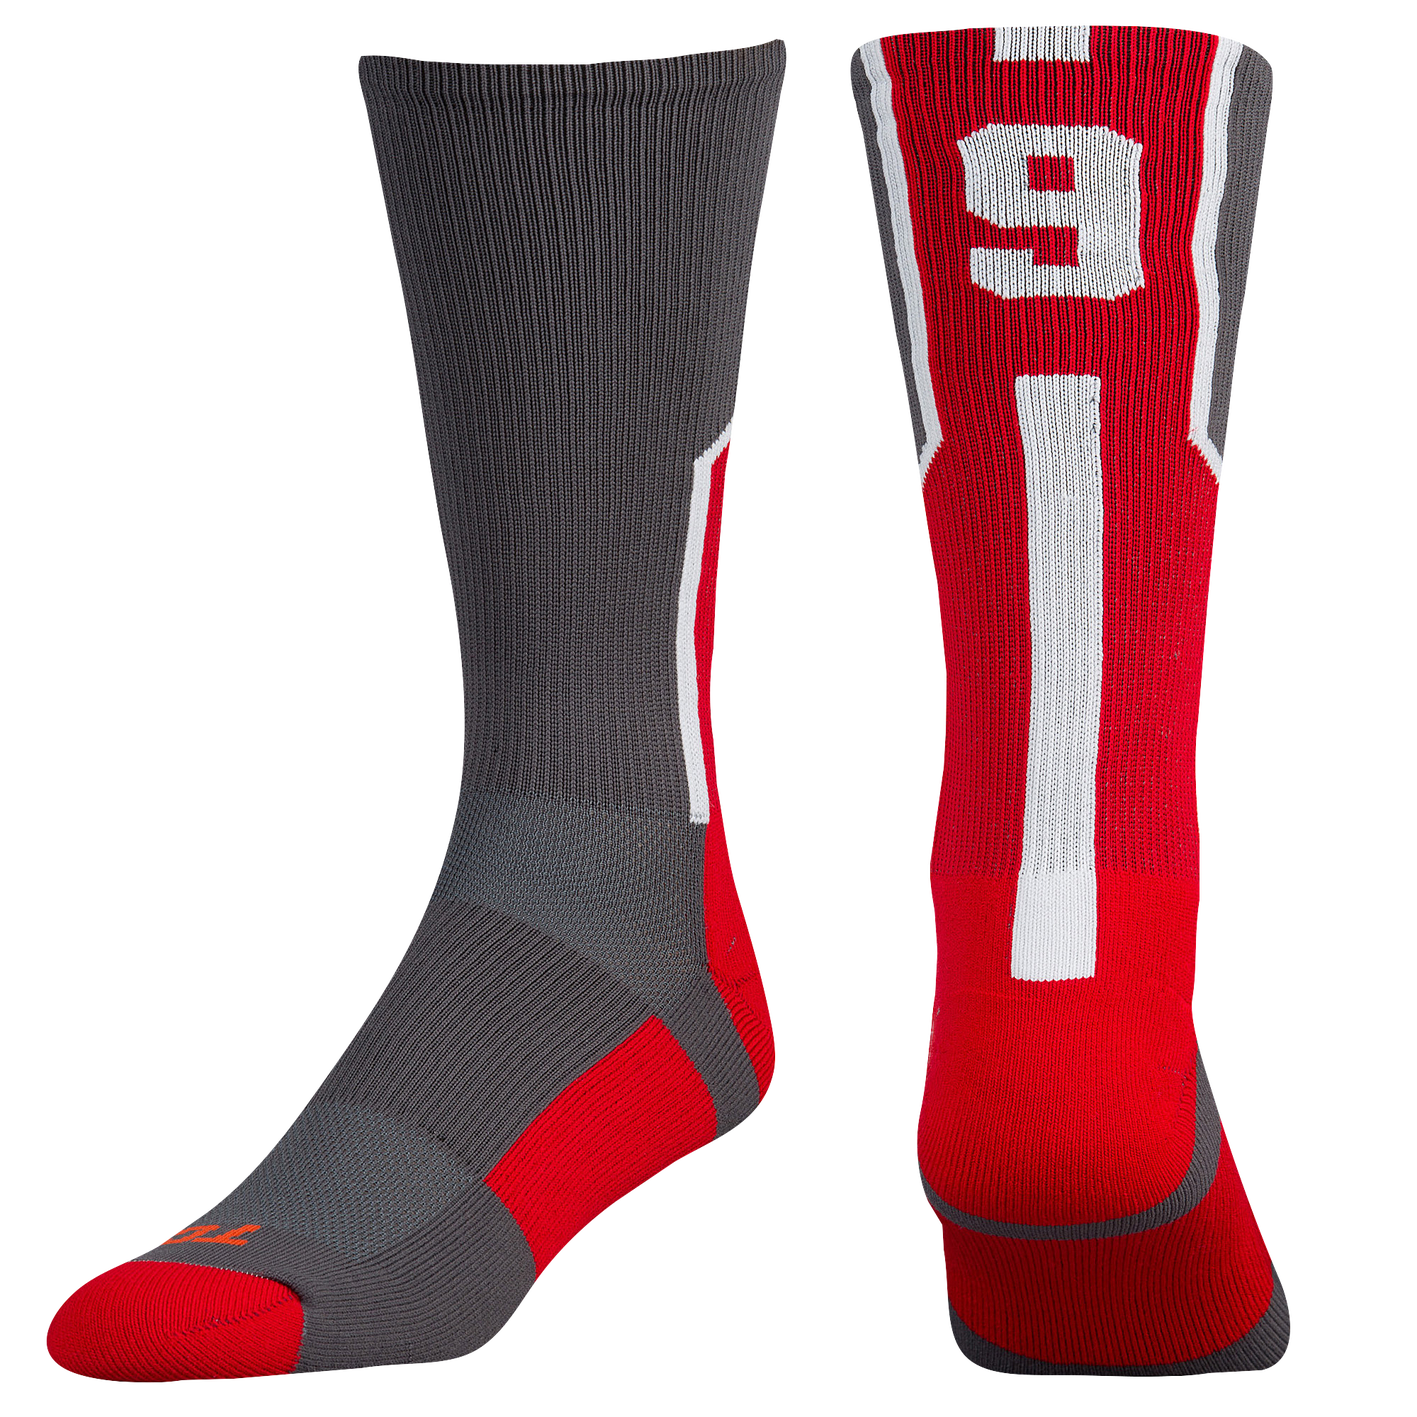 6dbc67c78a2e Twin City Player ID Custom Number Crew Socks - Men s - Football ...